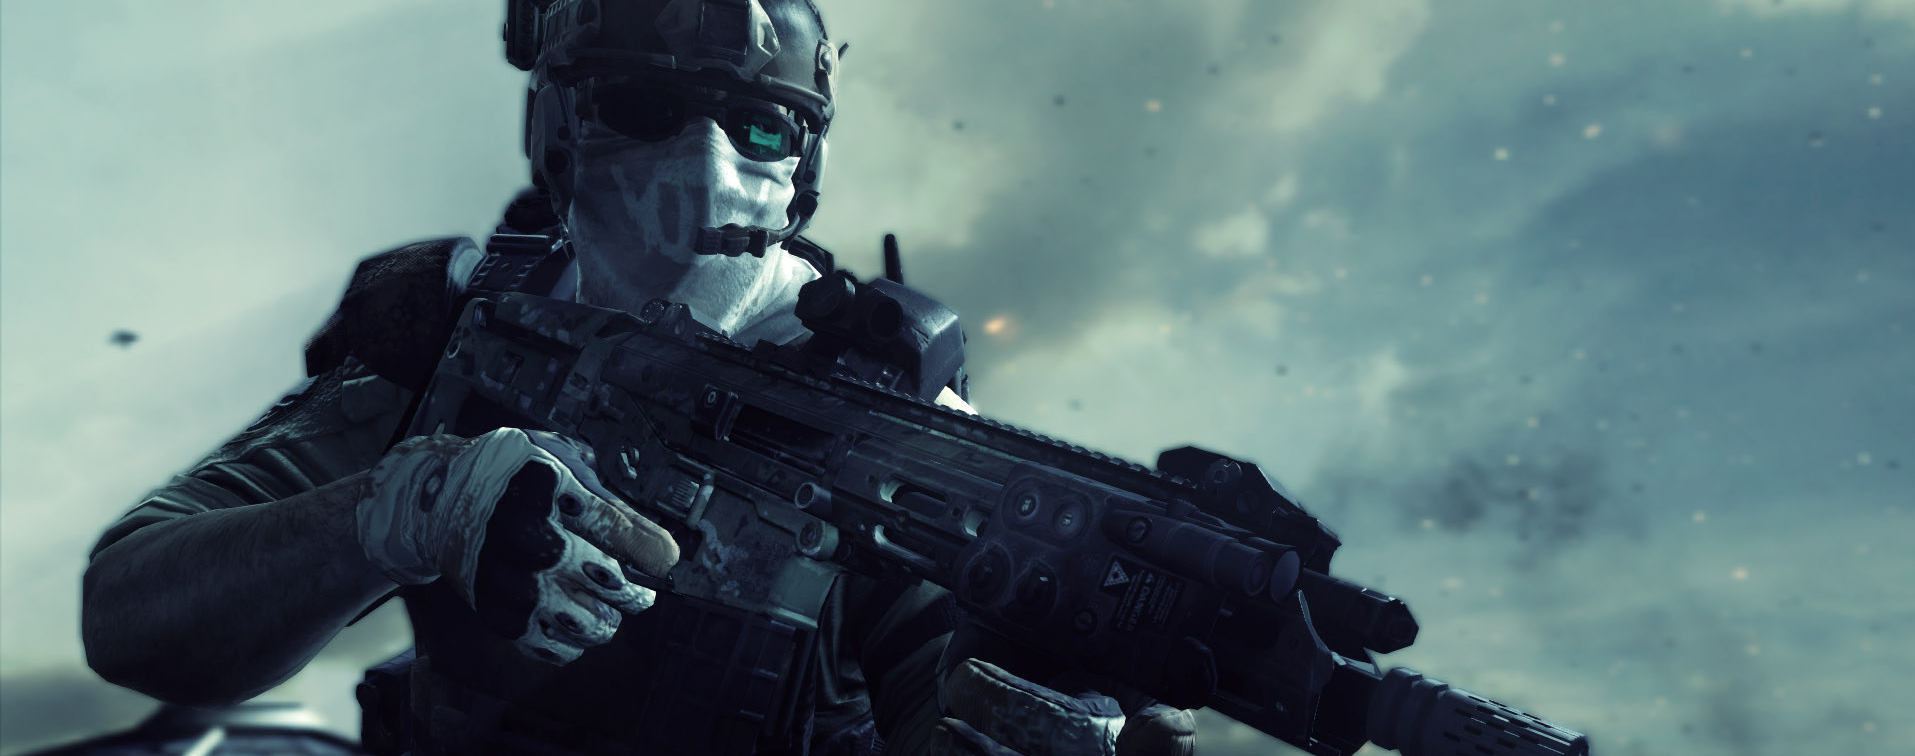 Ghost recon wallpapers games Background HD Wallpaper for Desktop 1915x756